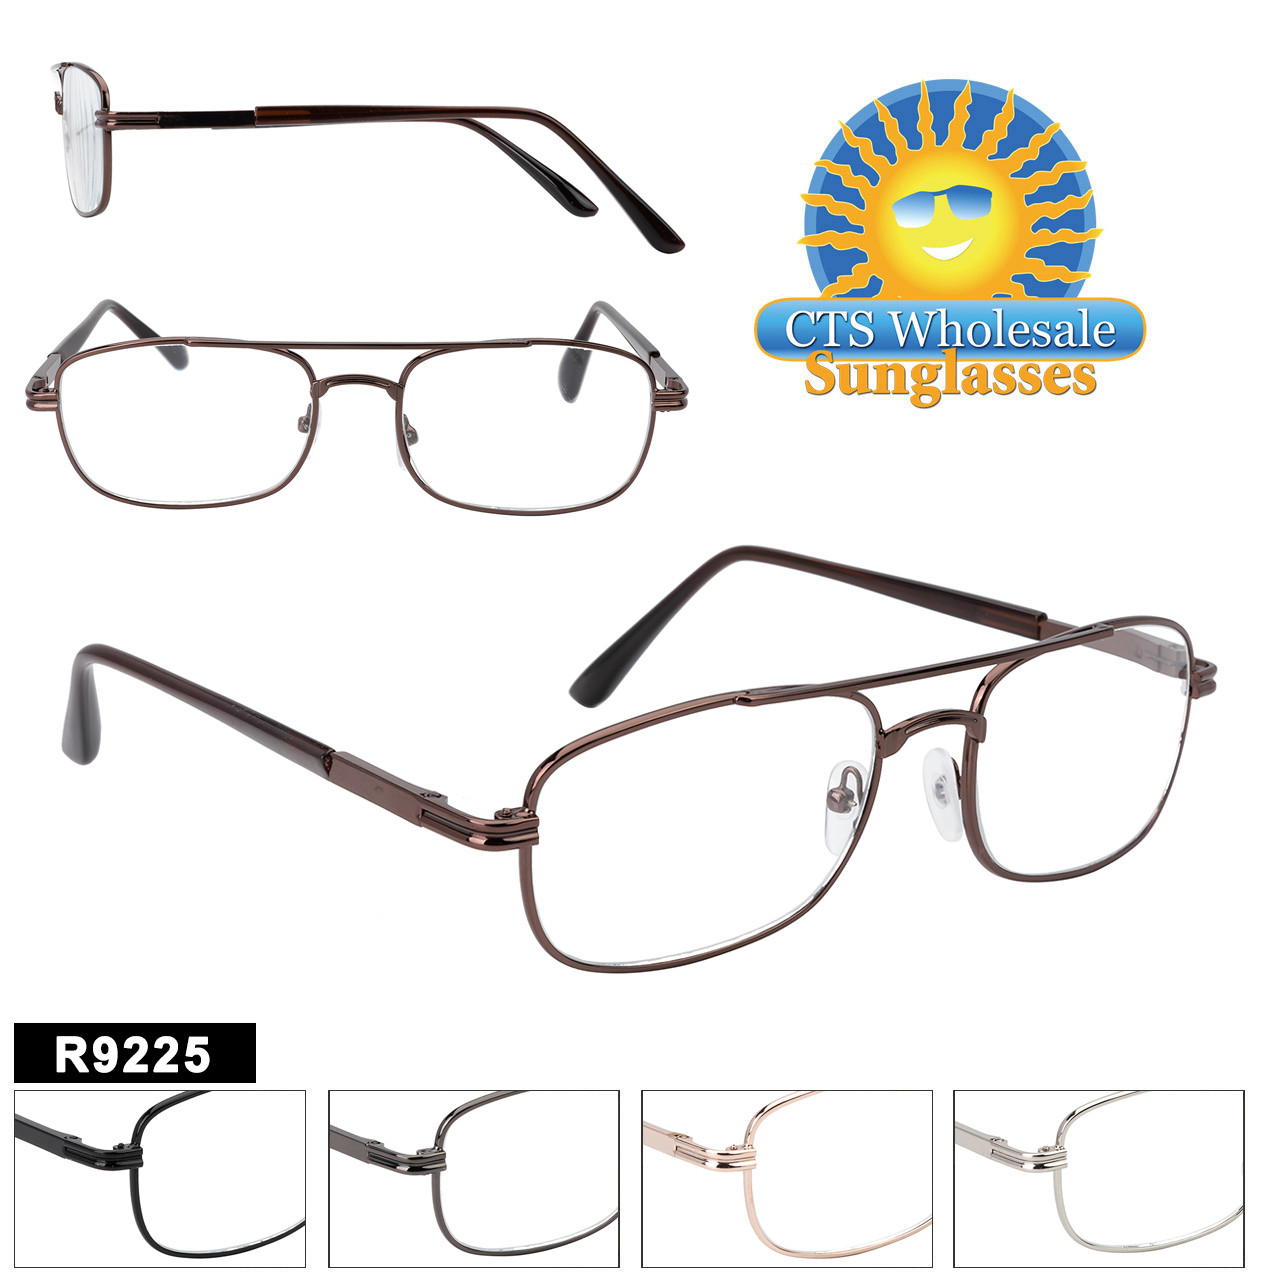 With its Aviator like styling, this style of Wholesale Readers  suites a variety of faces.  Sure to be a hit with 5 color choices and a variety of lens powers.